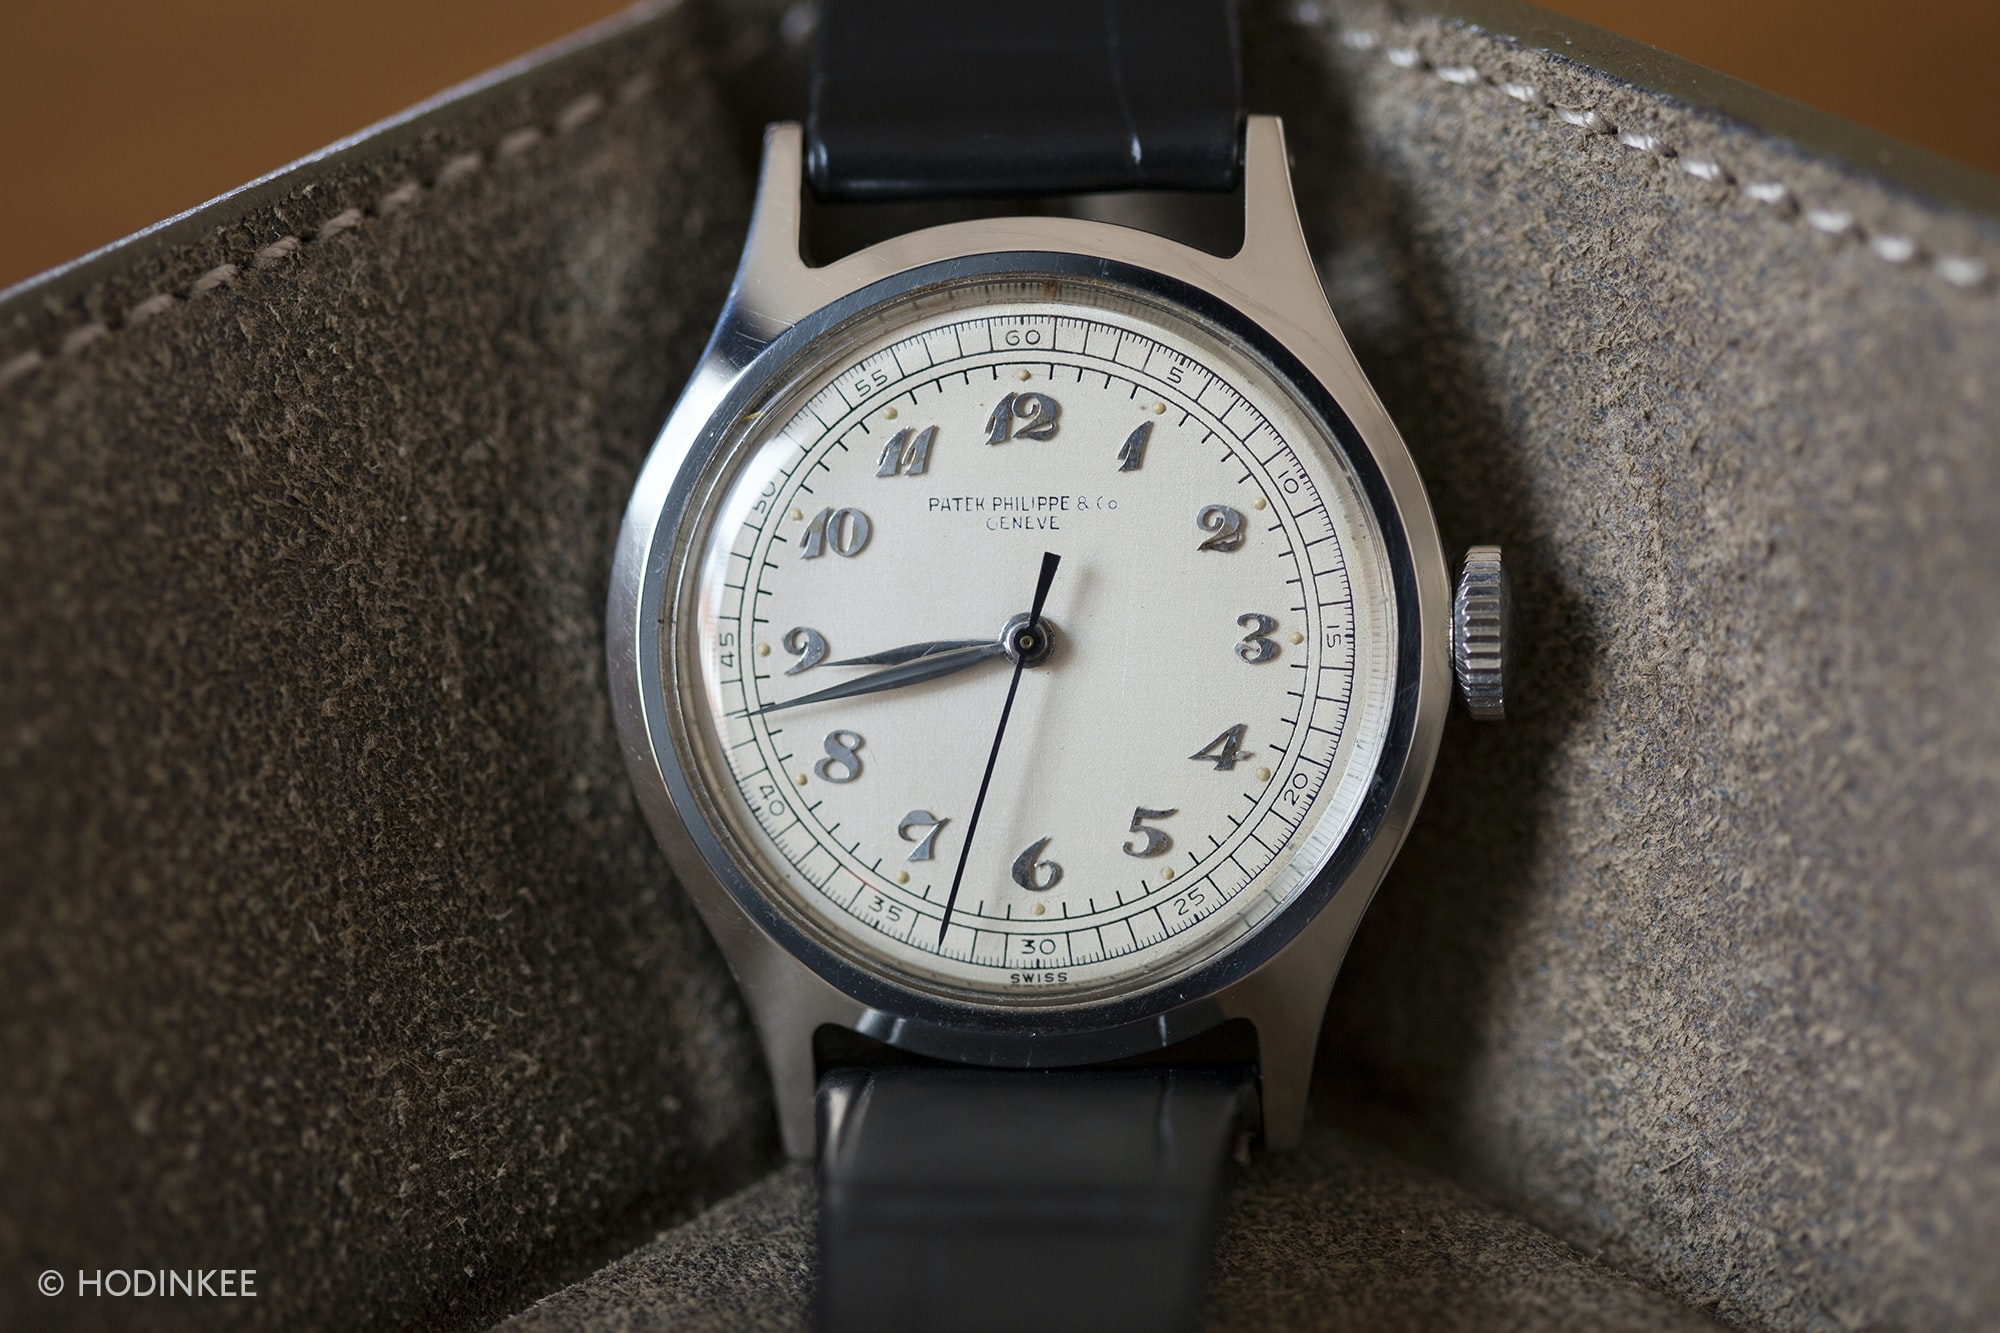 Patek Philippe Reference 565 In Steel With Breguet Numerals Talking Watches: With Roni Madhvani Talking Watches: With Roni Madhvani 20010232 copy